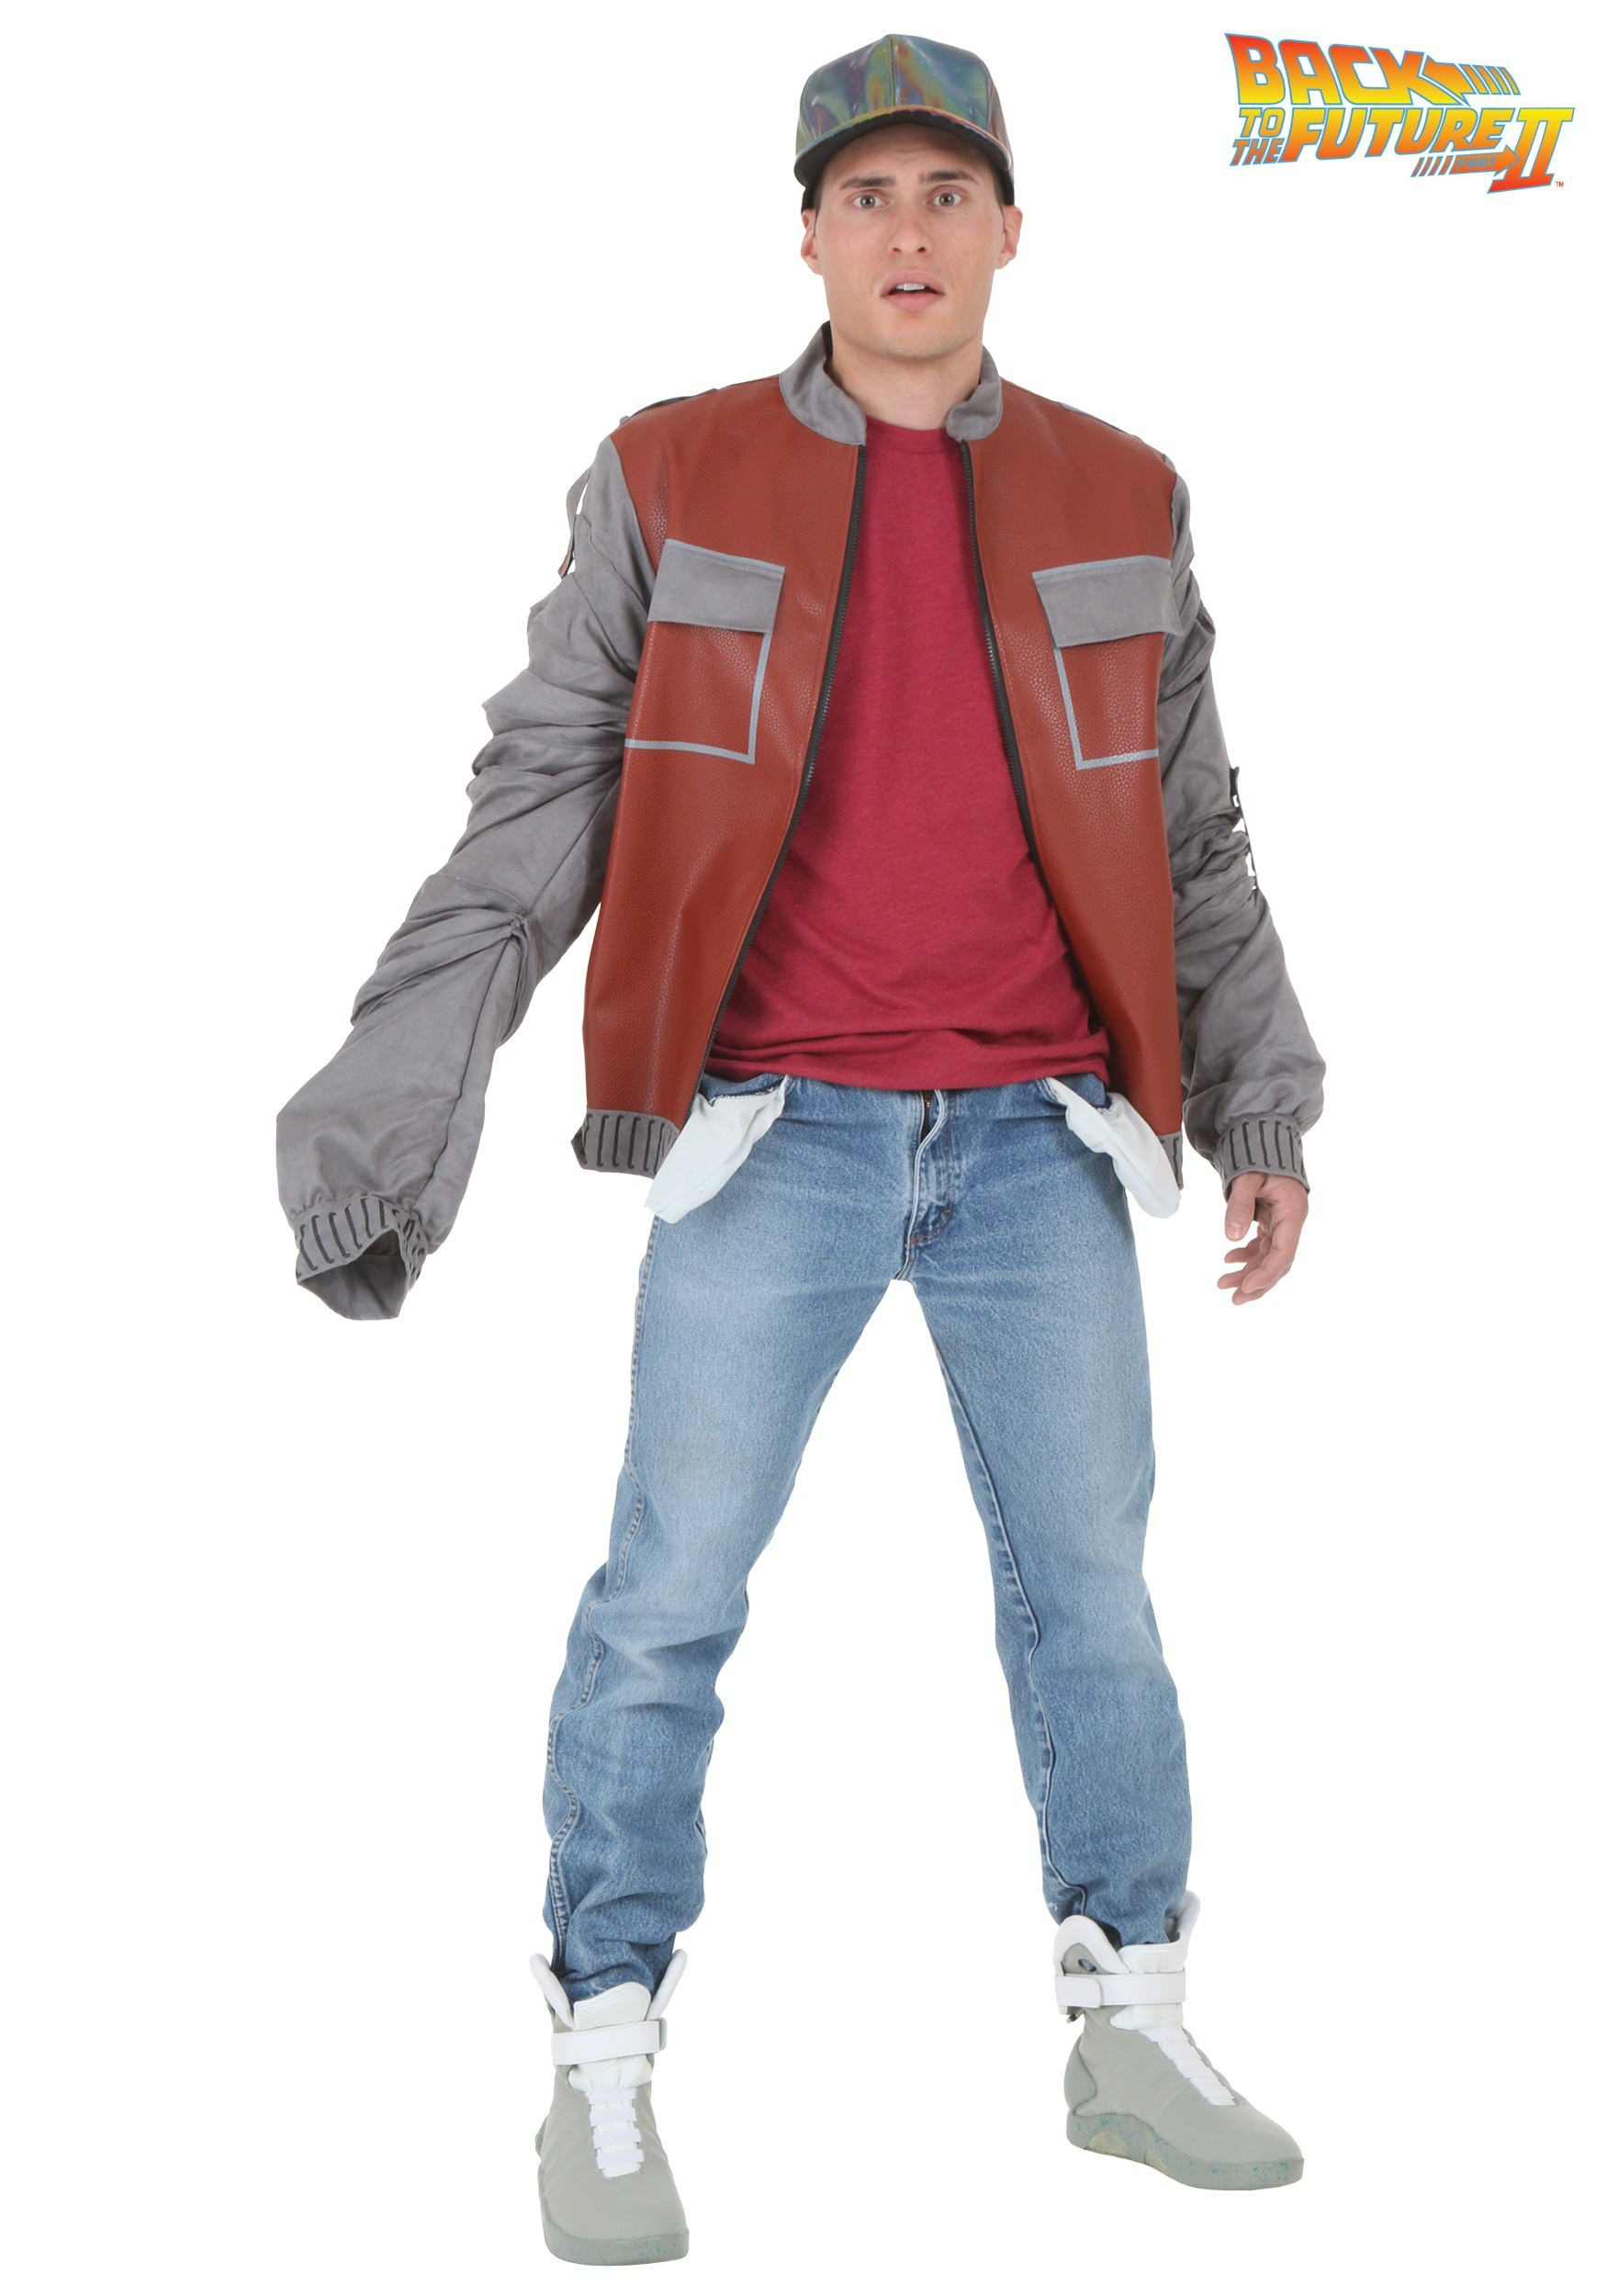 Plus Back to The Future Marty McFly Jacket BTF2248PL